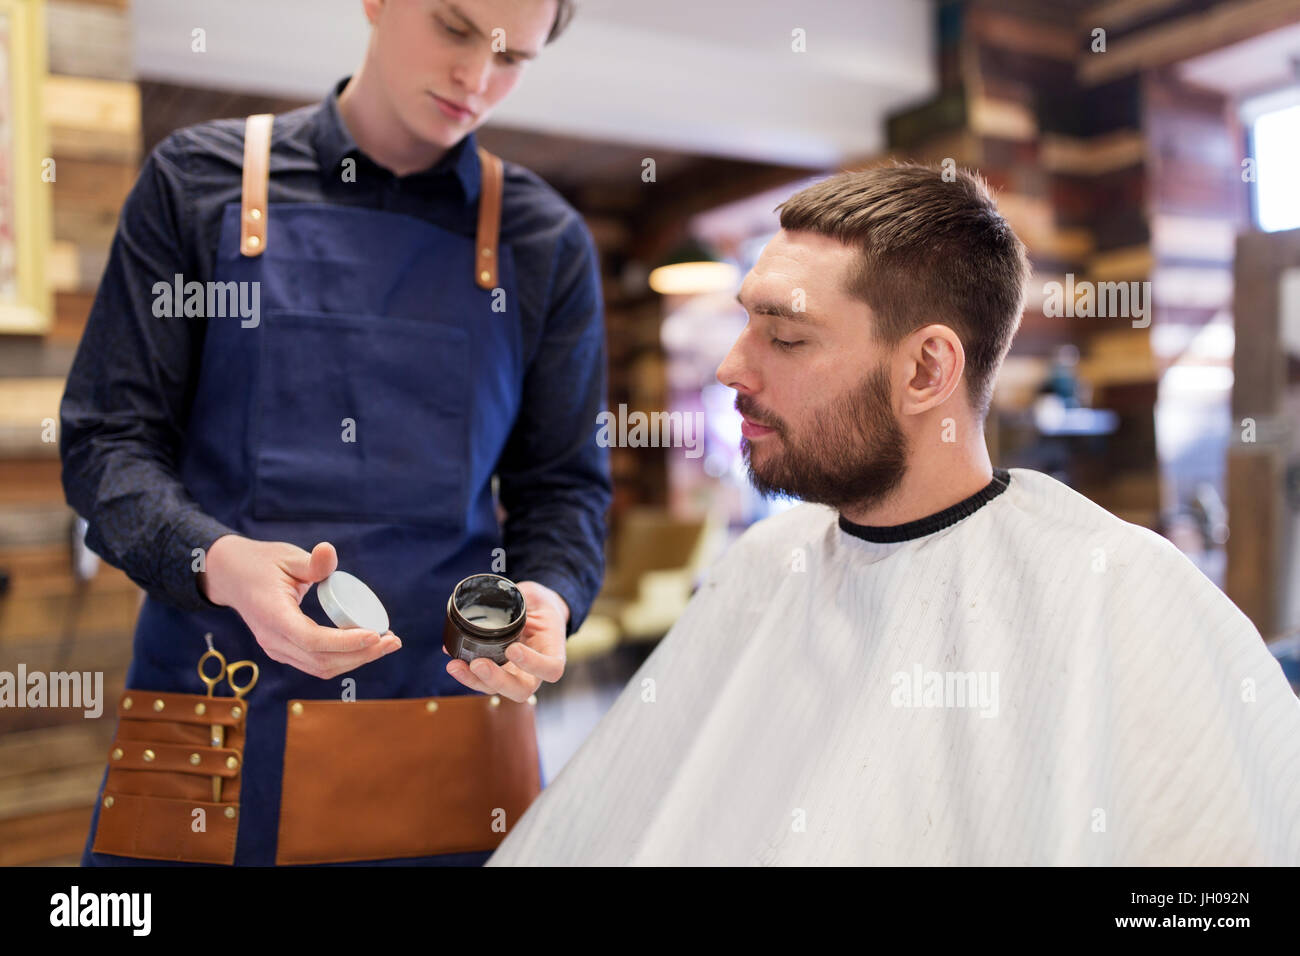 barber showing hair styling wax to male customer - Stock Image